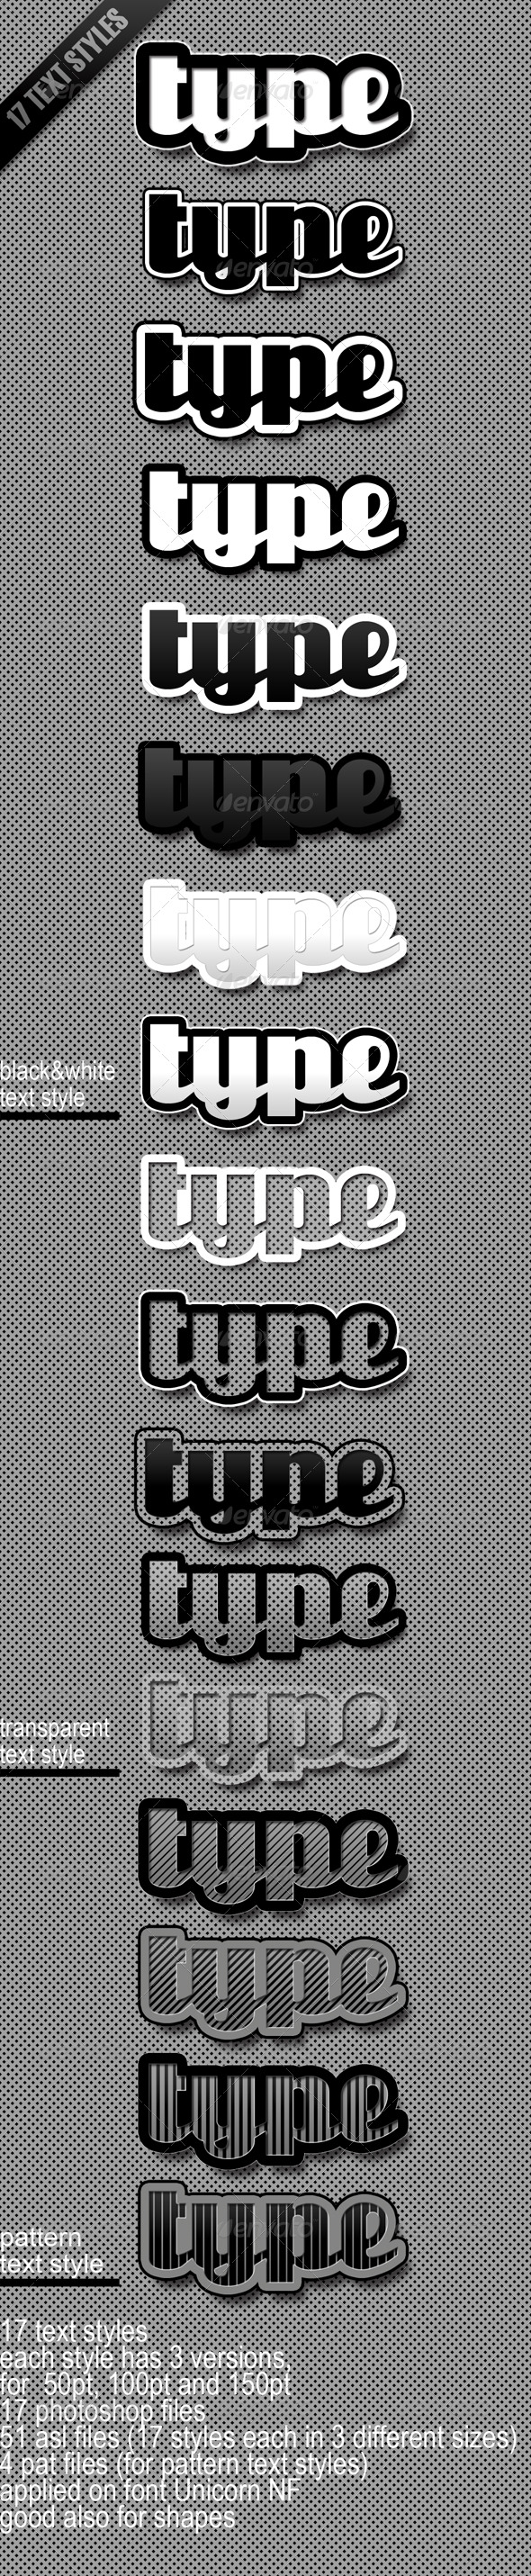 Graphic River Text Styles Add-ons -  Photoshop  Styles  Text Effects 164122